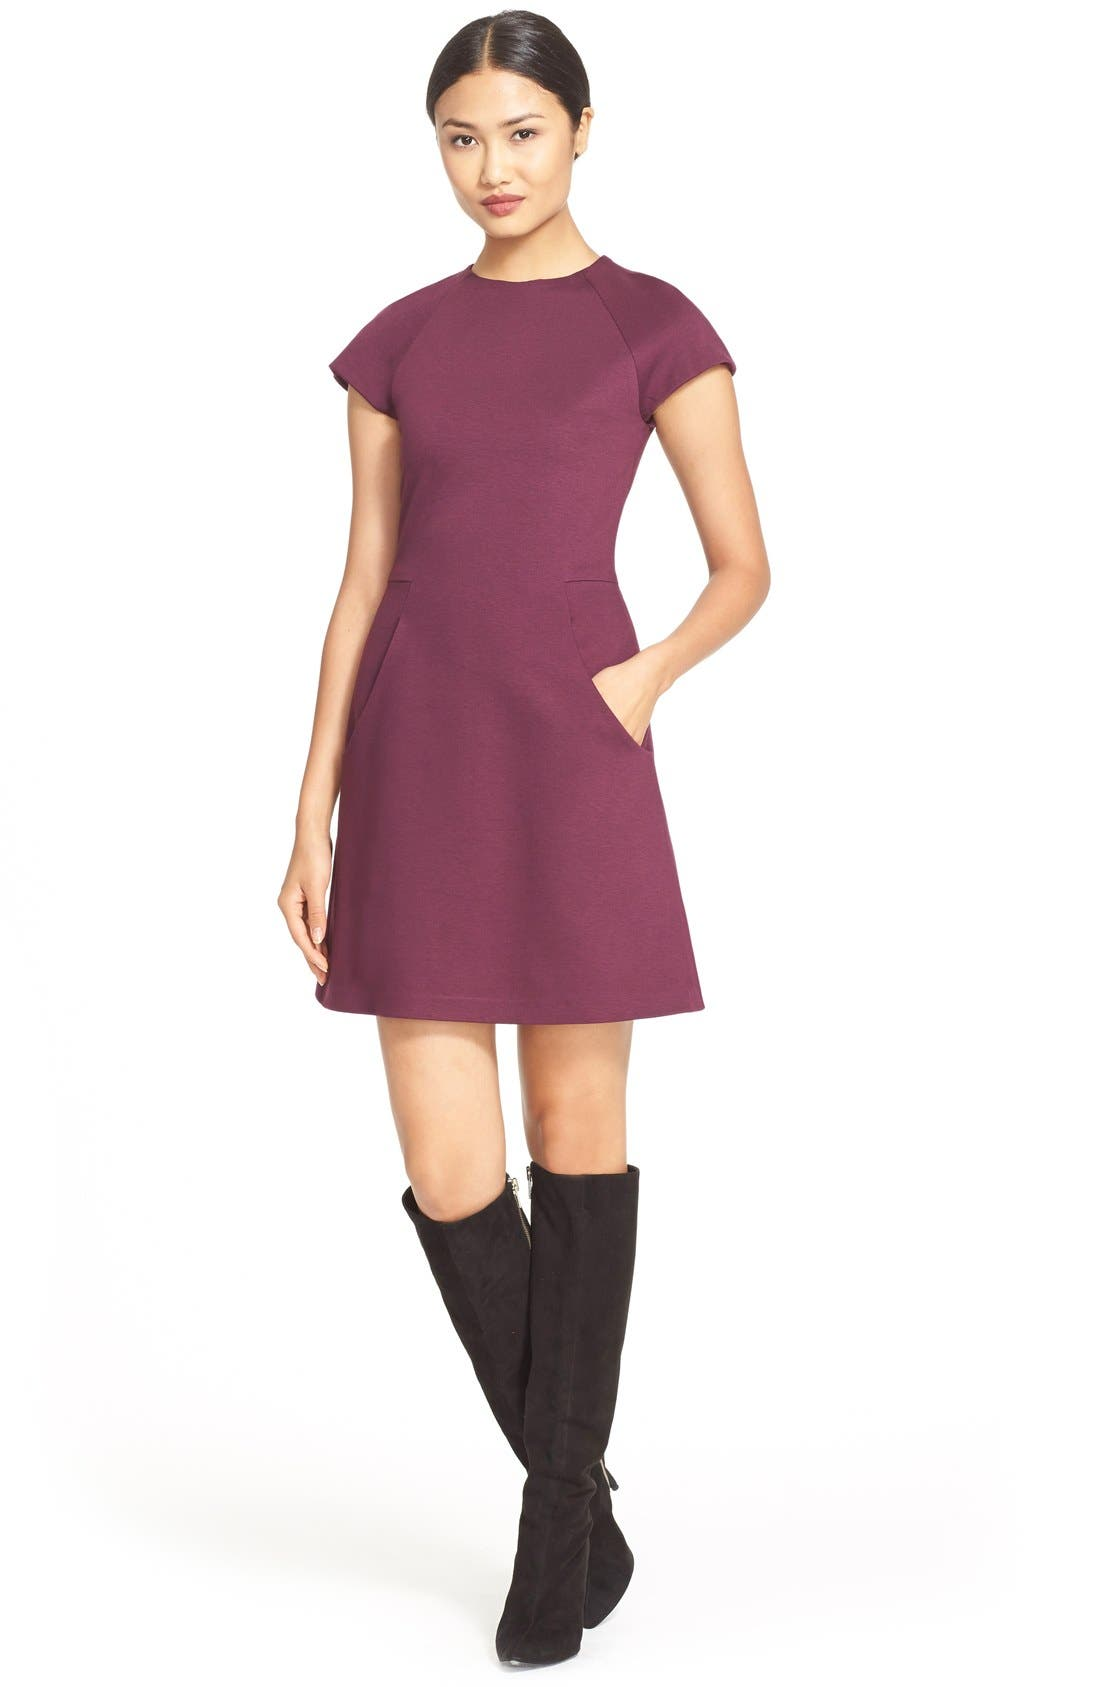 ALICE + OLIVIA,                             'Reanne' Fit & Flare Dress,                             Main thumbnail 1, color,                             502